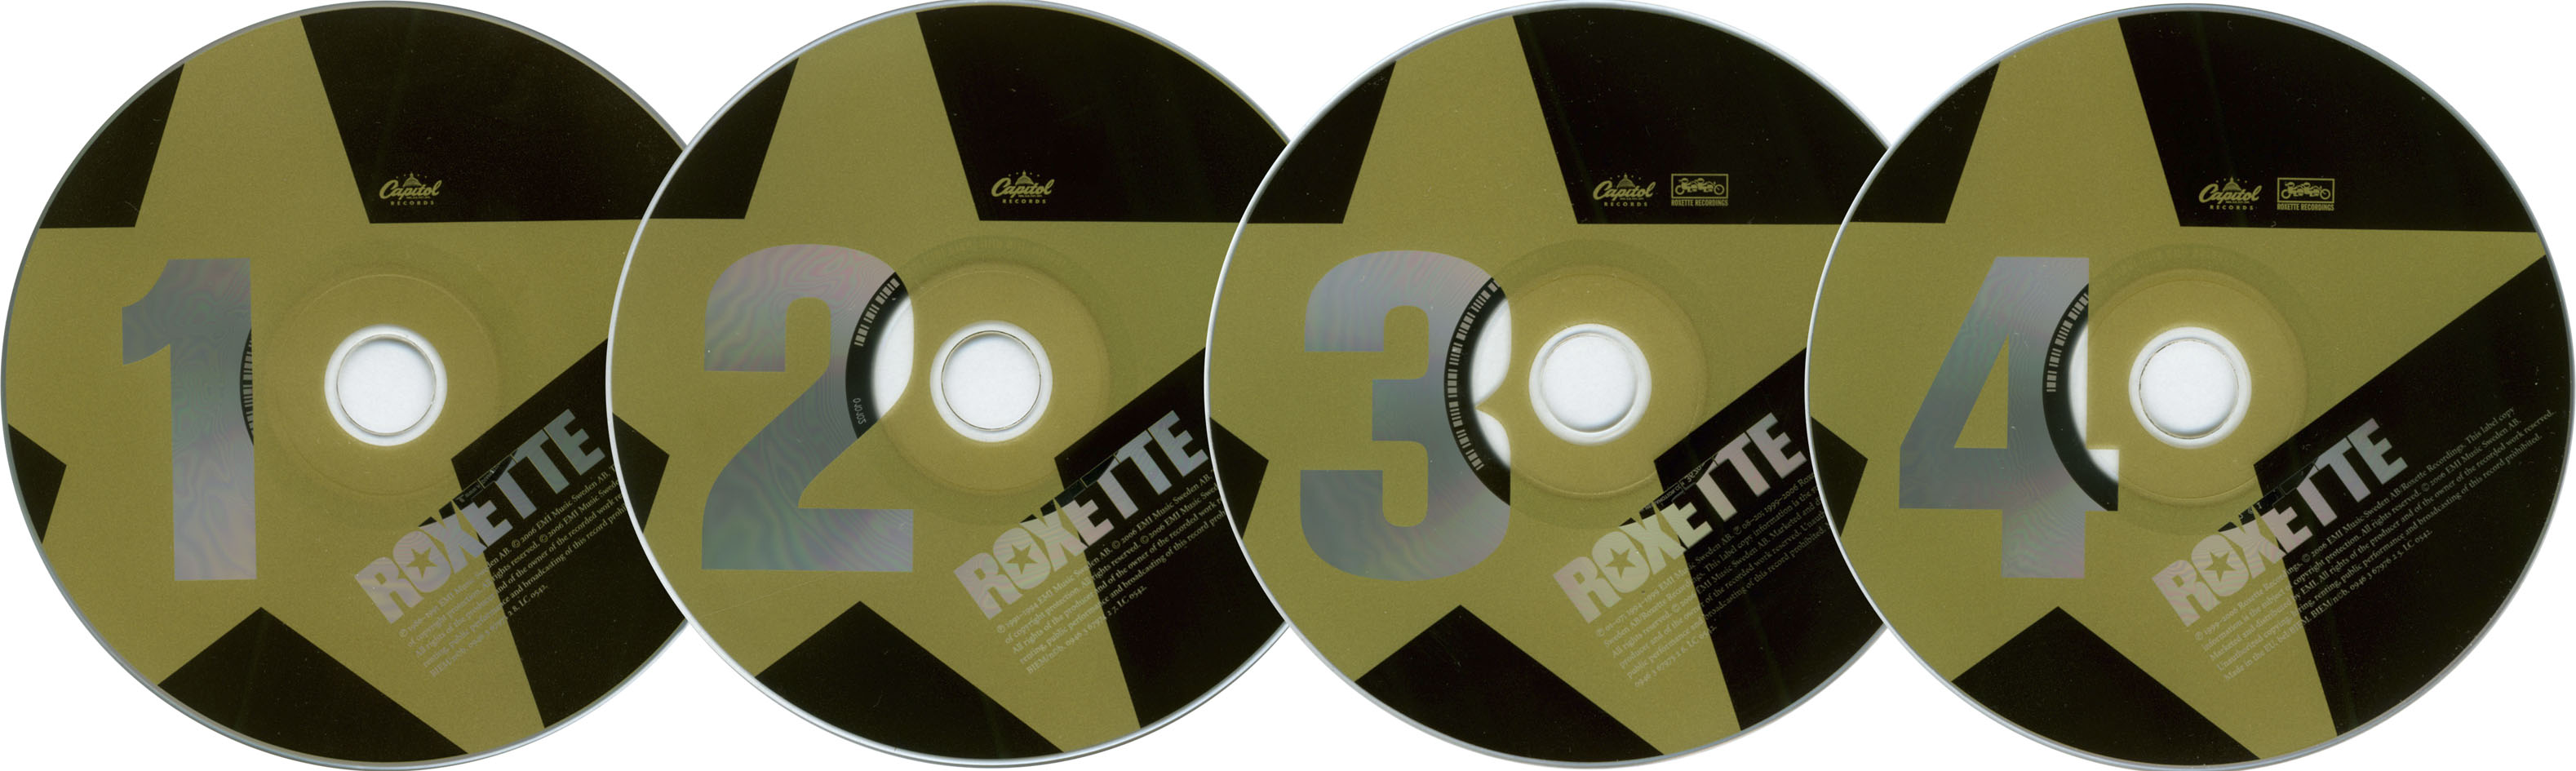 Roxette - The Rox Box: Roxette 86-06 (2006) 4 CD + 2 DVD Box Set